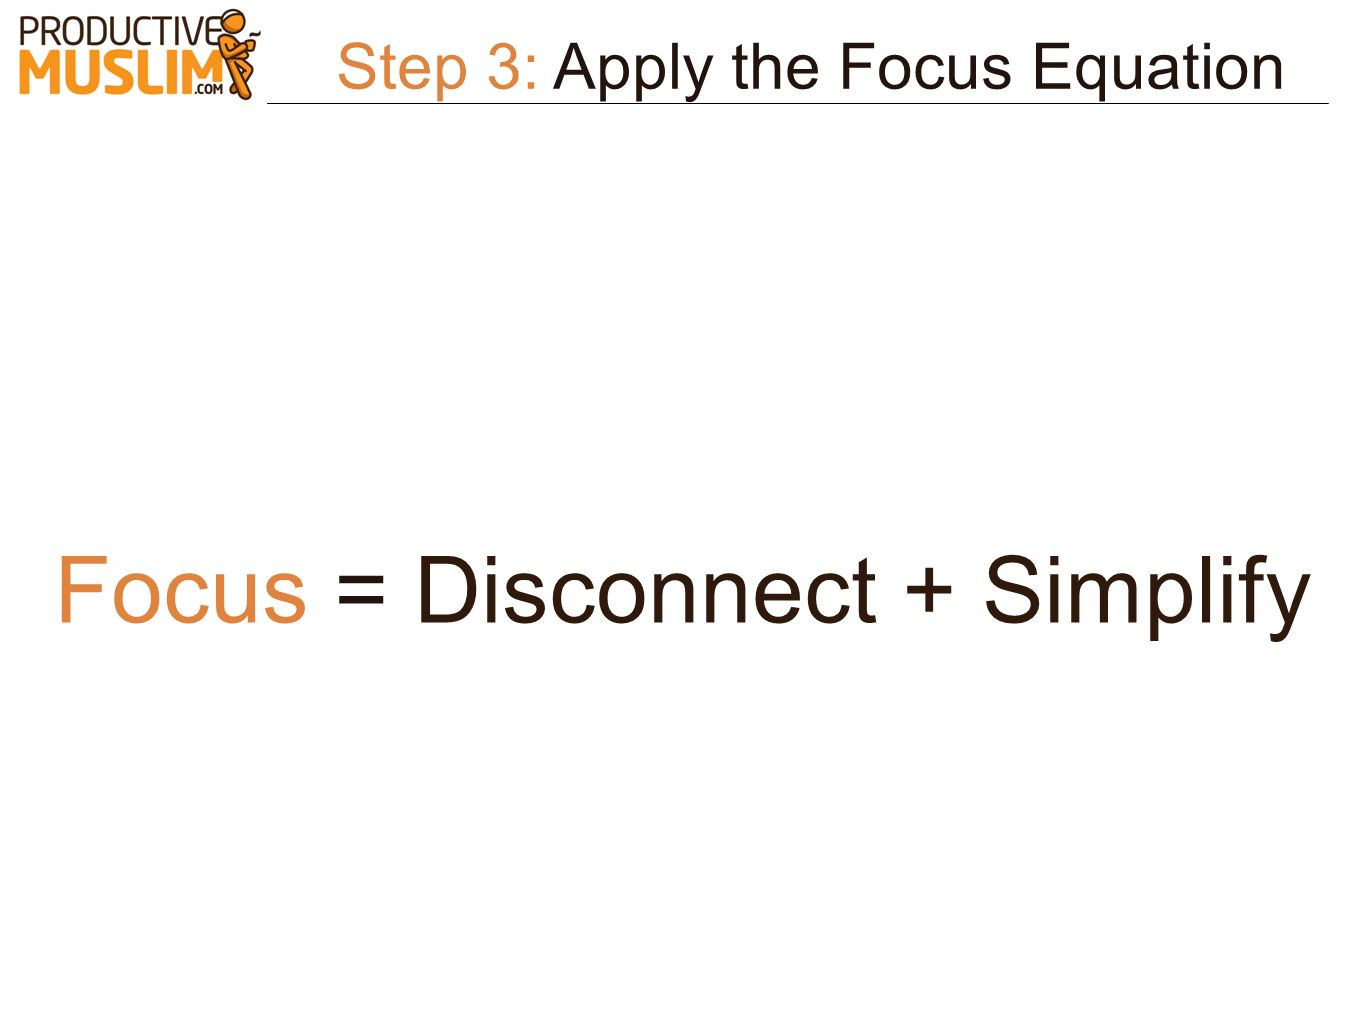 Focus = Disconnect + Simplify